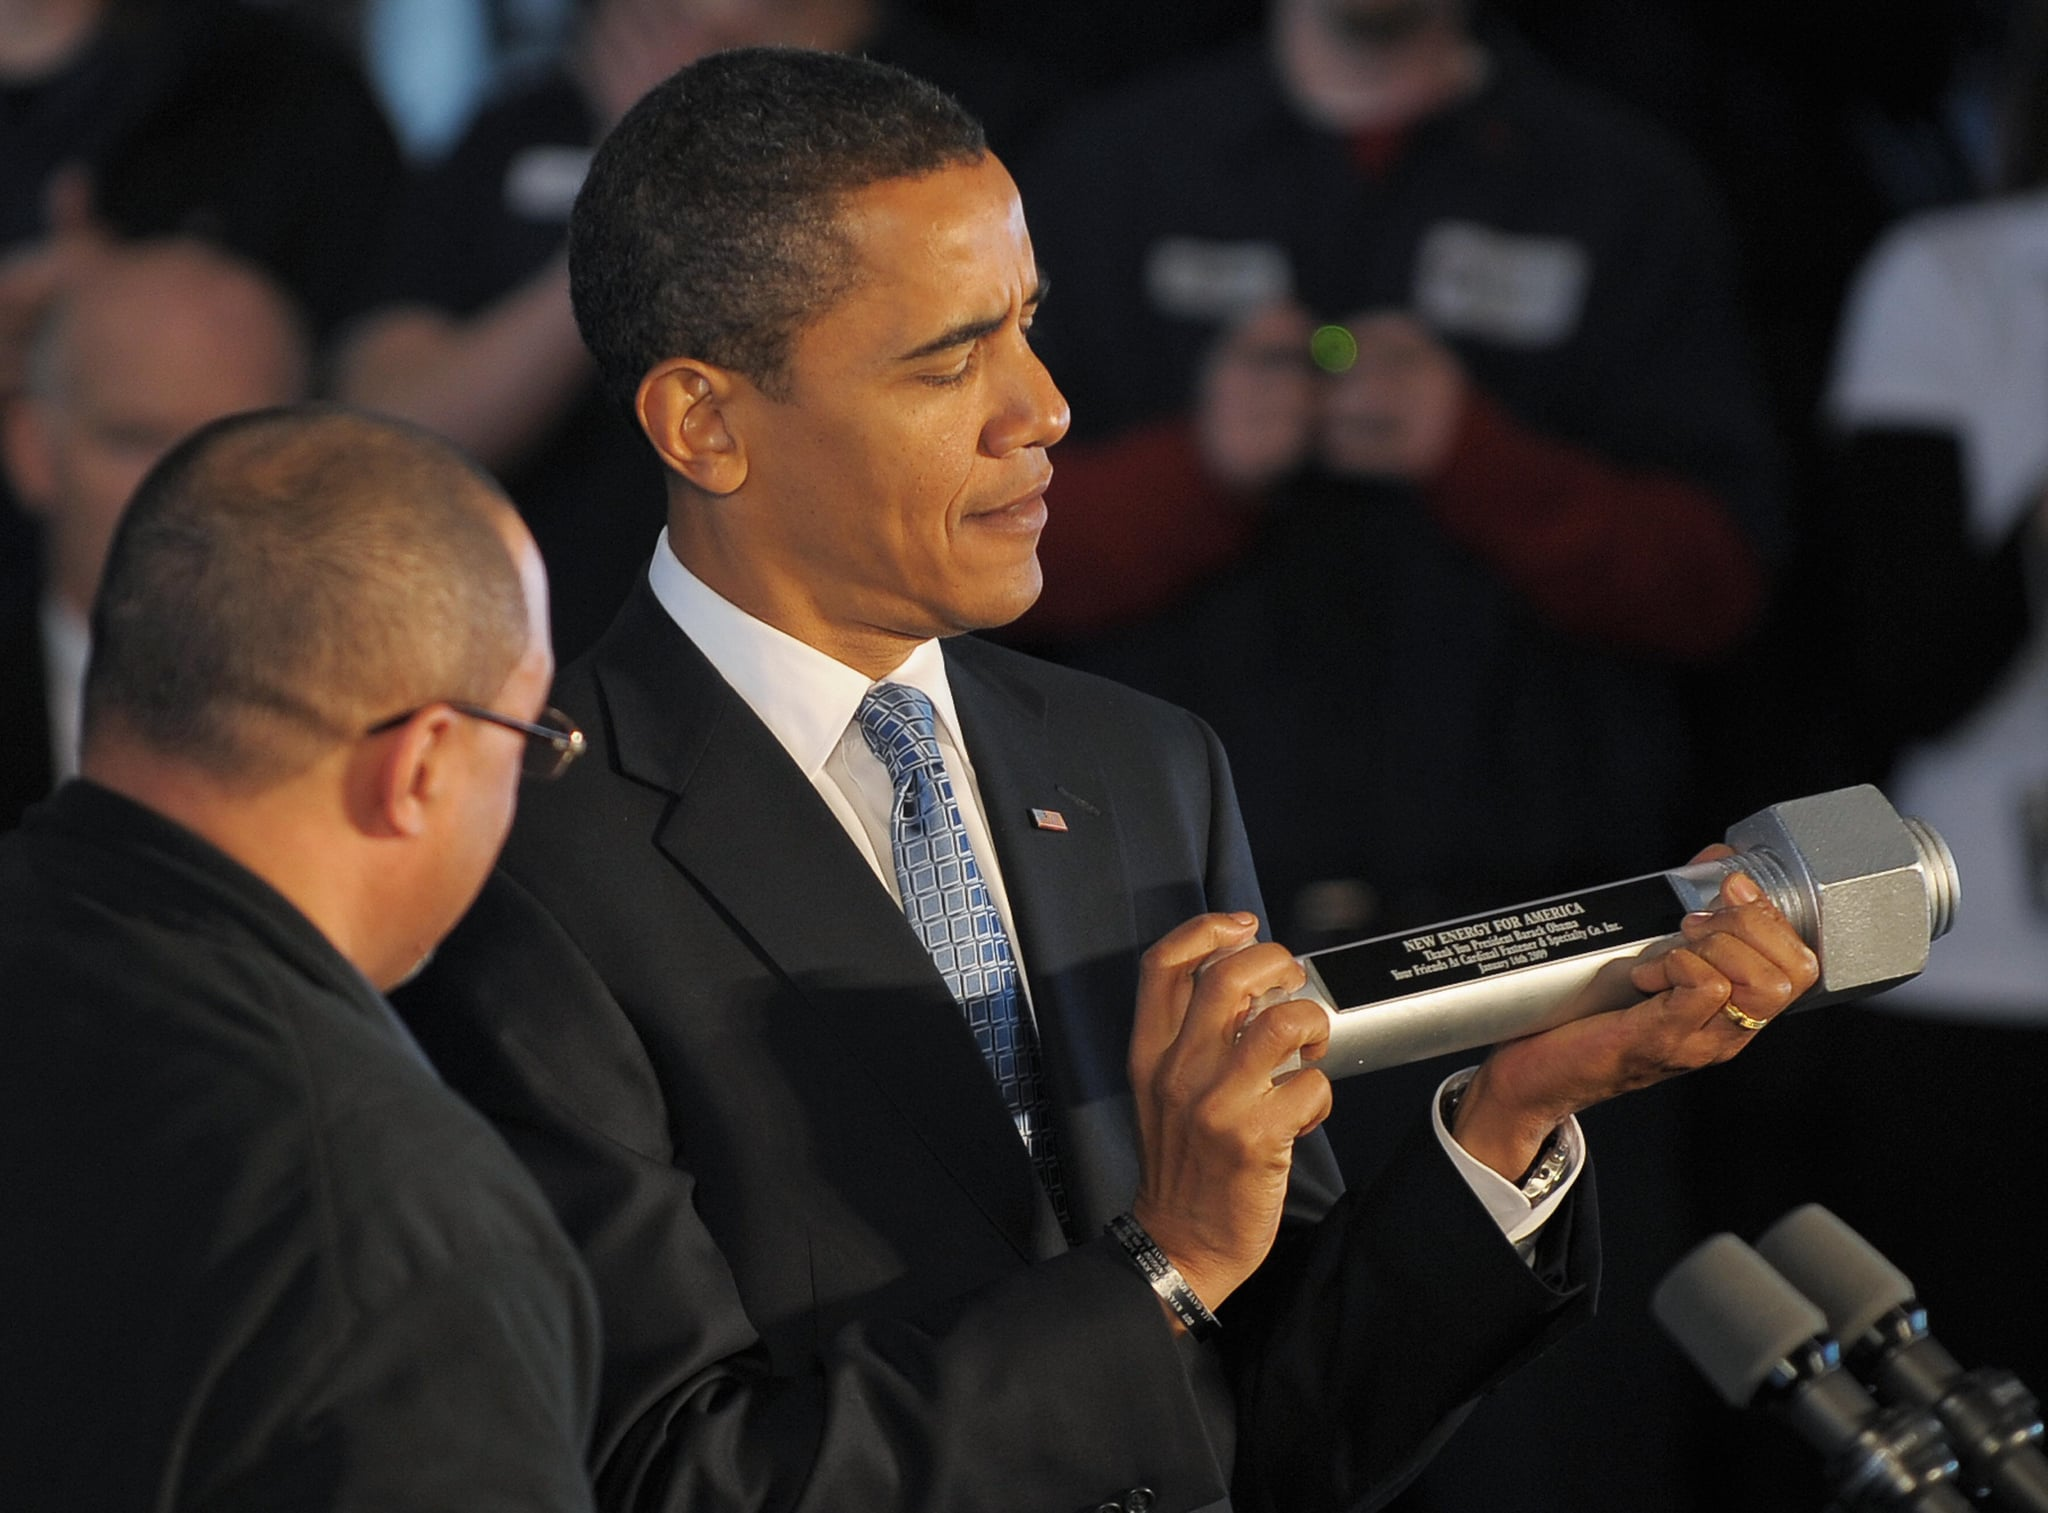 Obama holds a souvenir bolt presented to him by an employee following the tour.